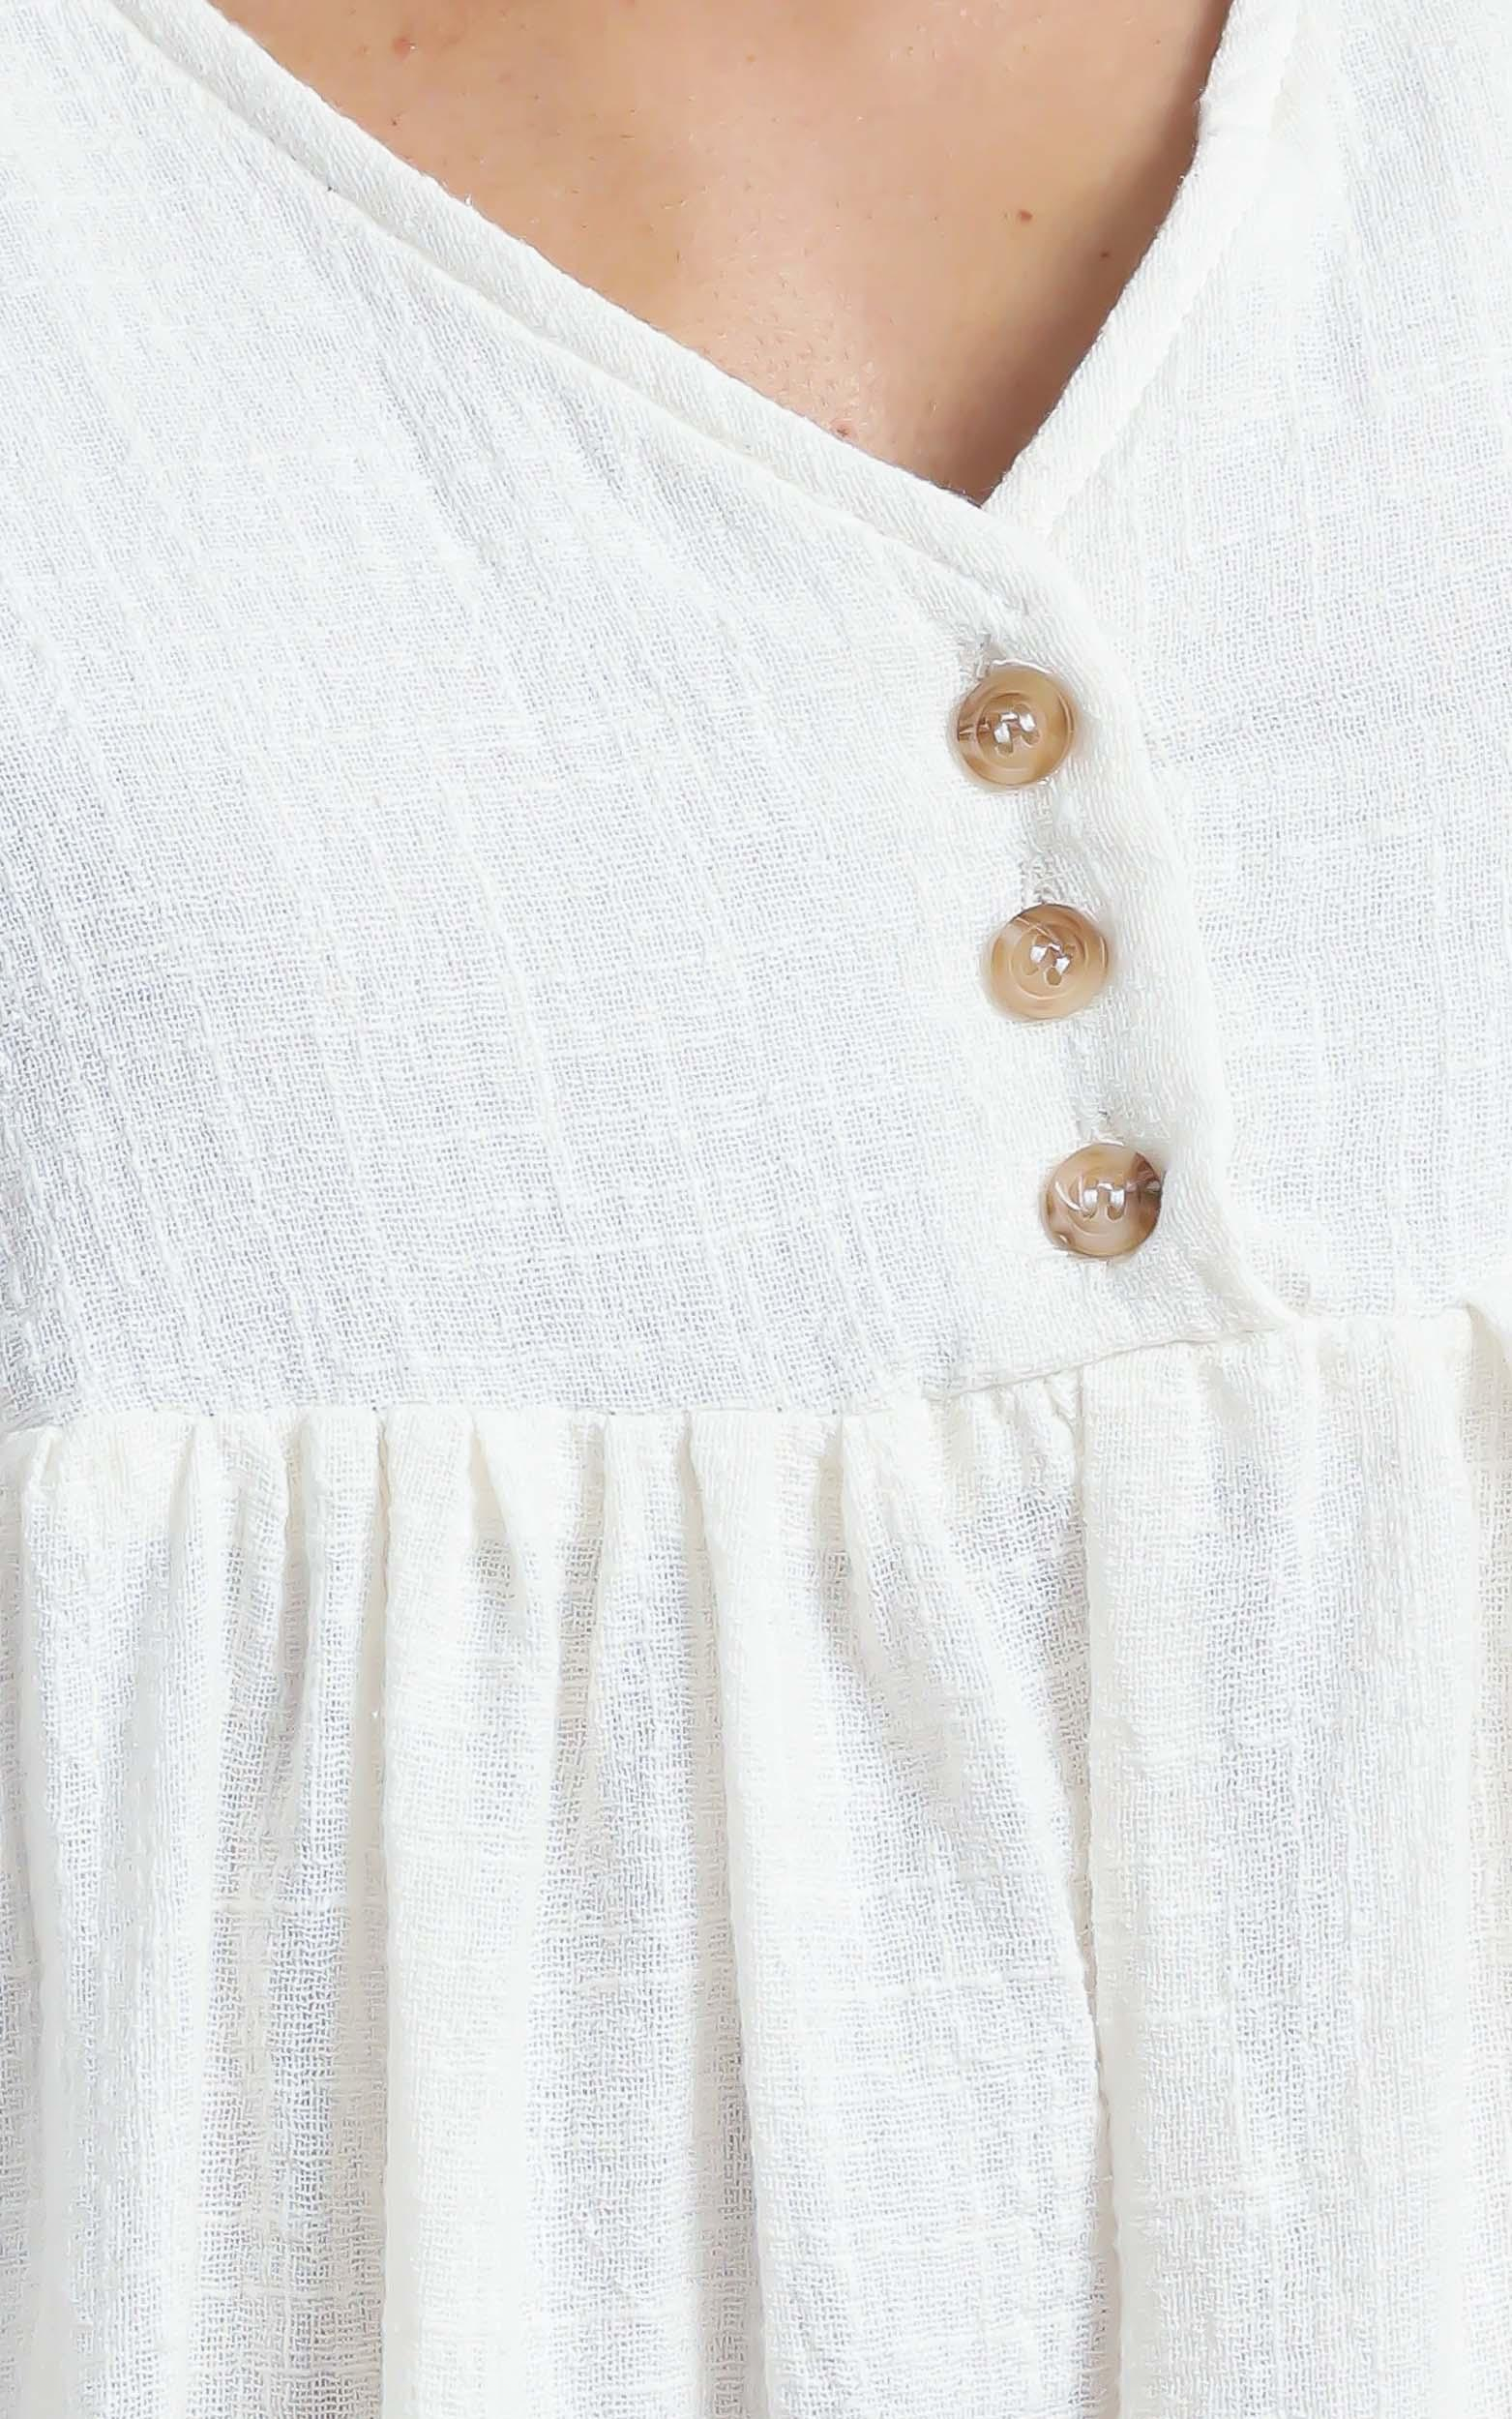 Coraline Dress in White - 12 (L), White, hi-res image number null